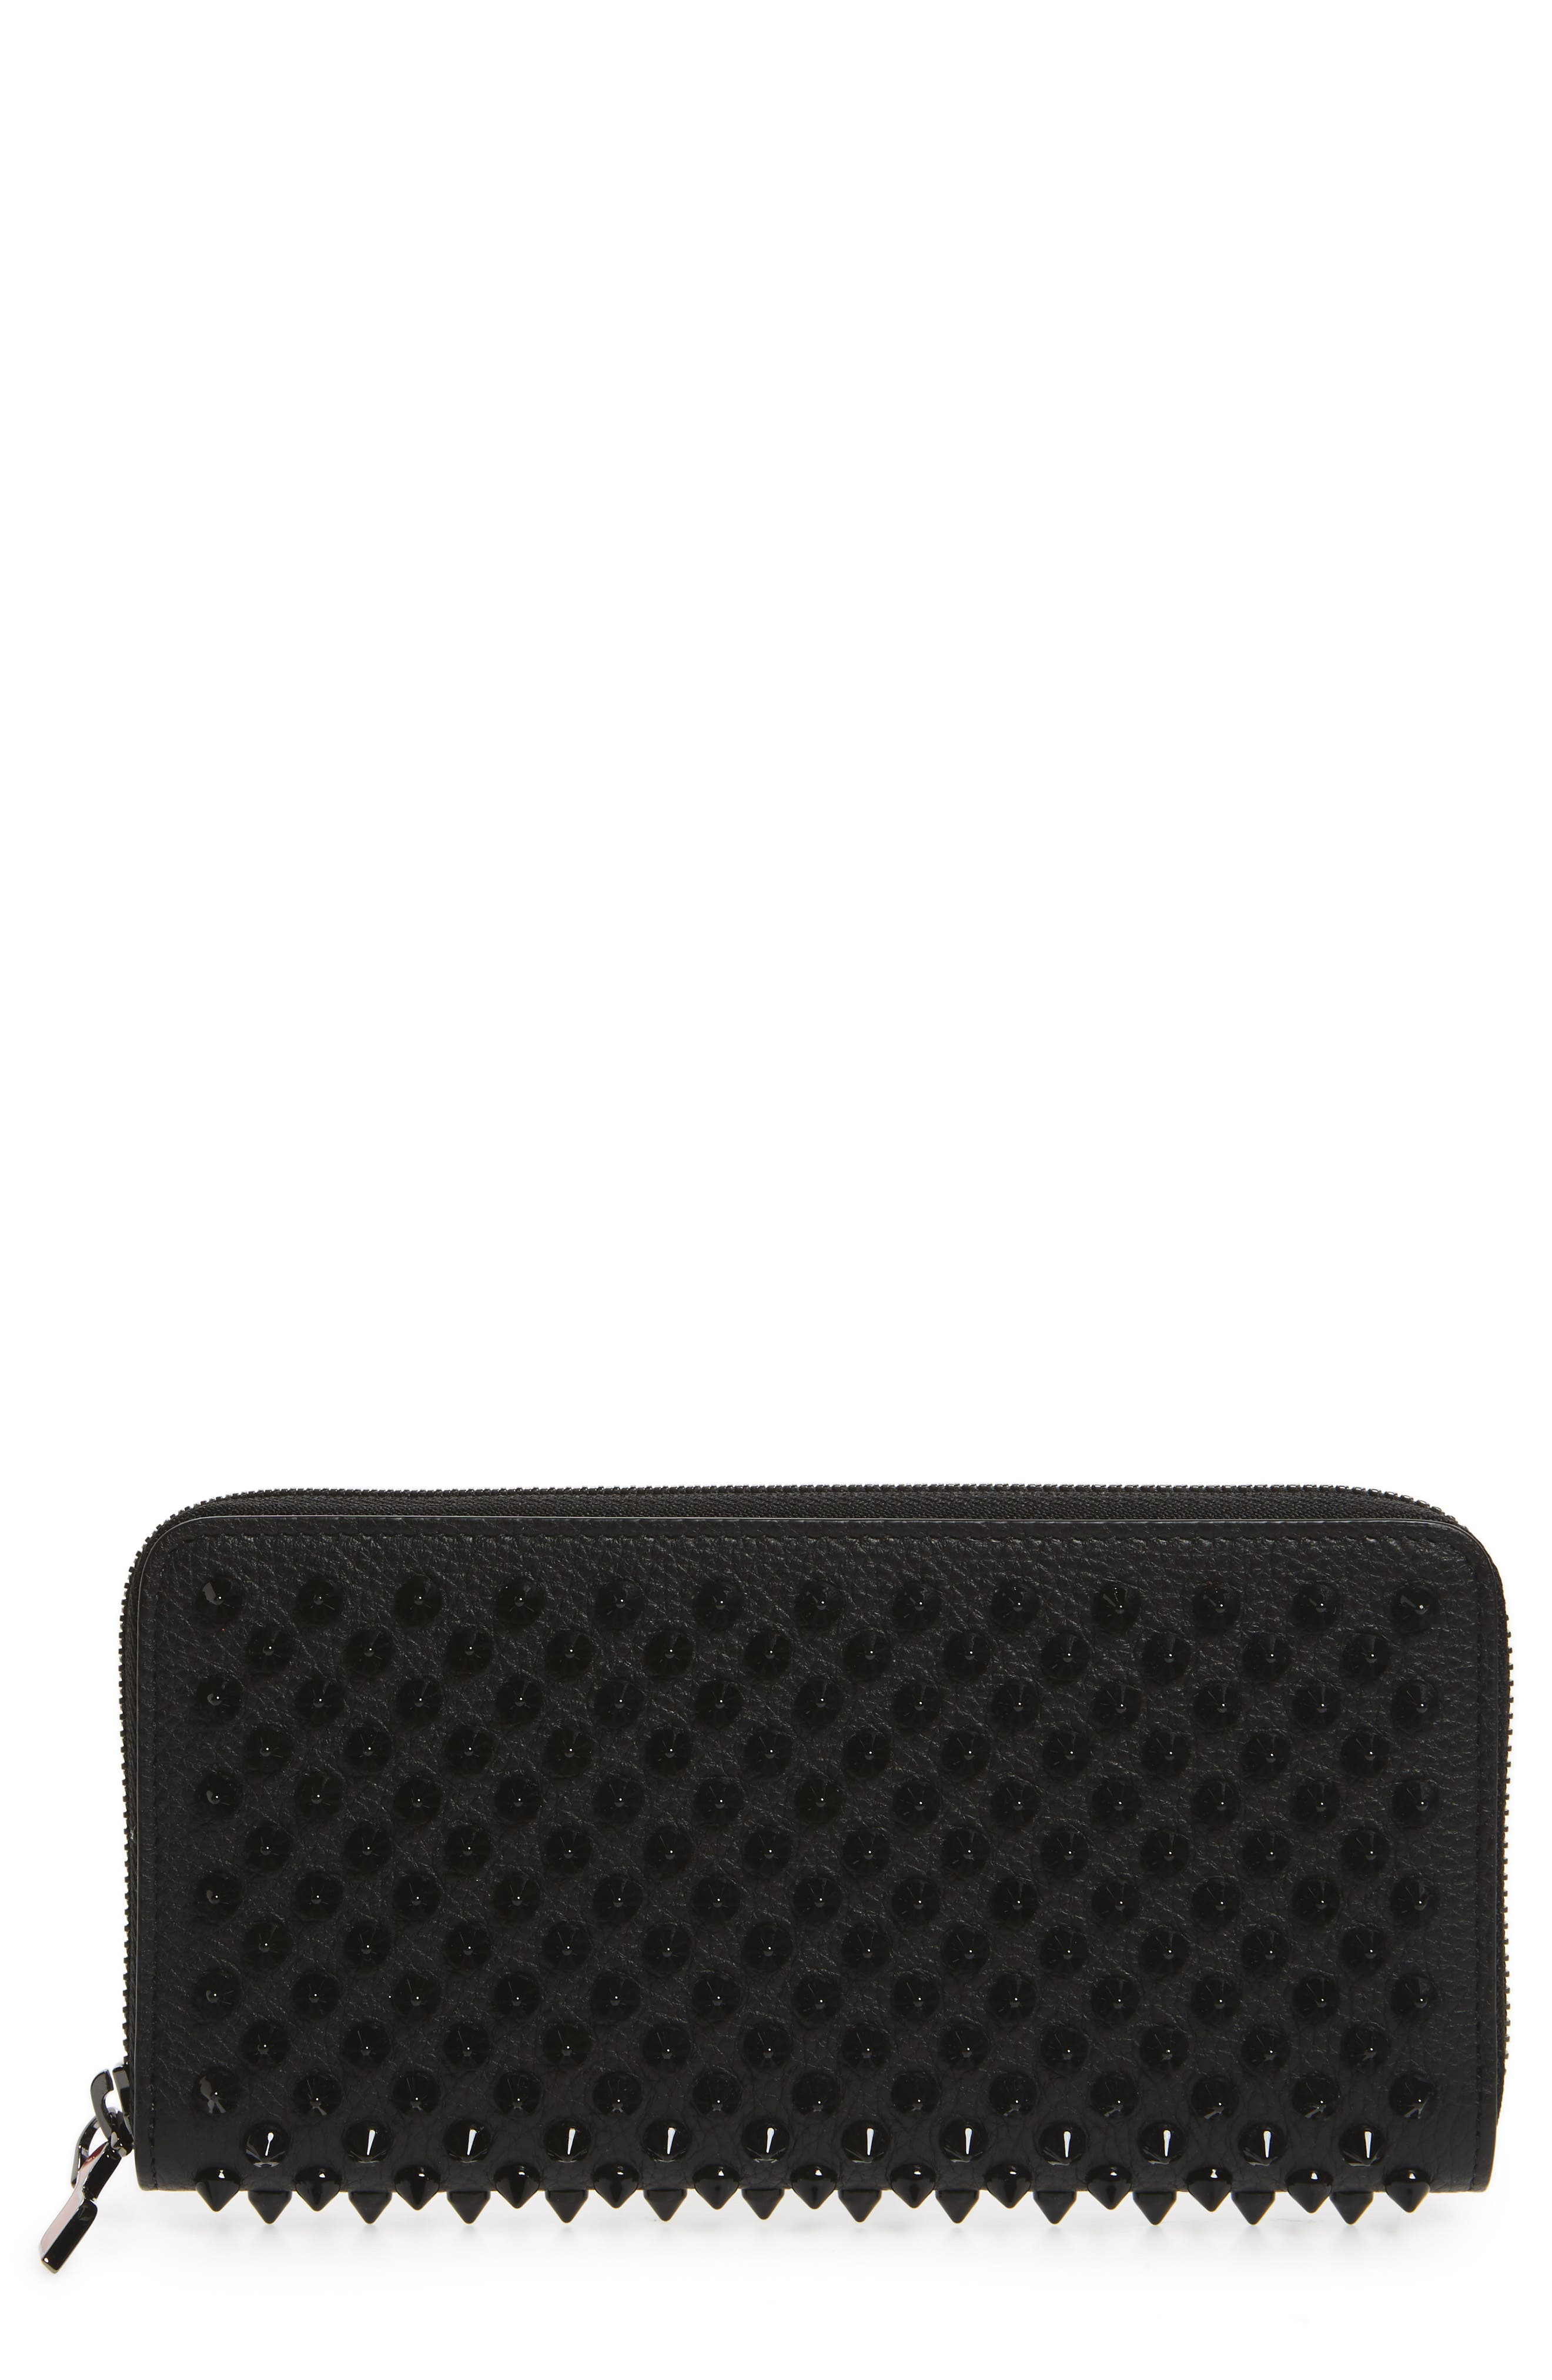 Panettone Spiked Calfskin Wallet,                         Main,                         color, BLACK/ BLACK